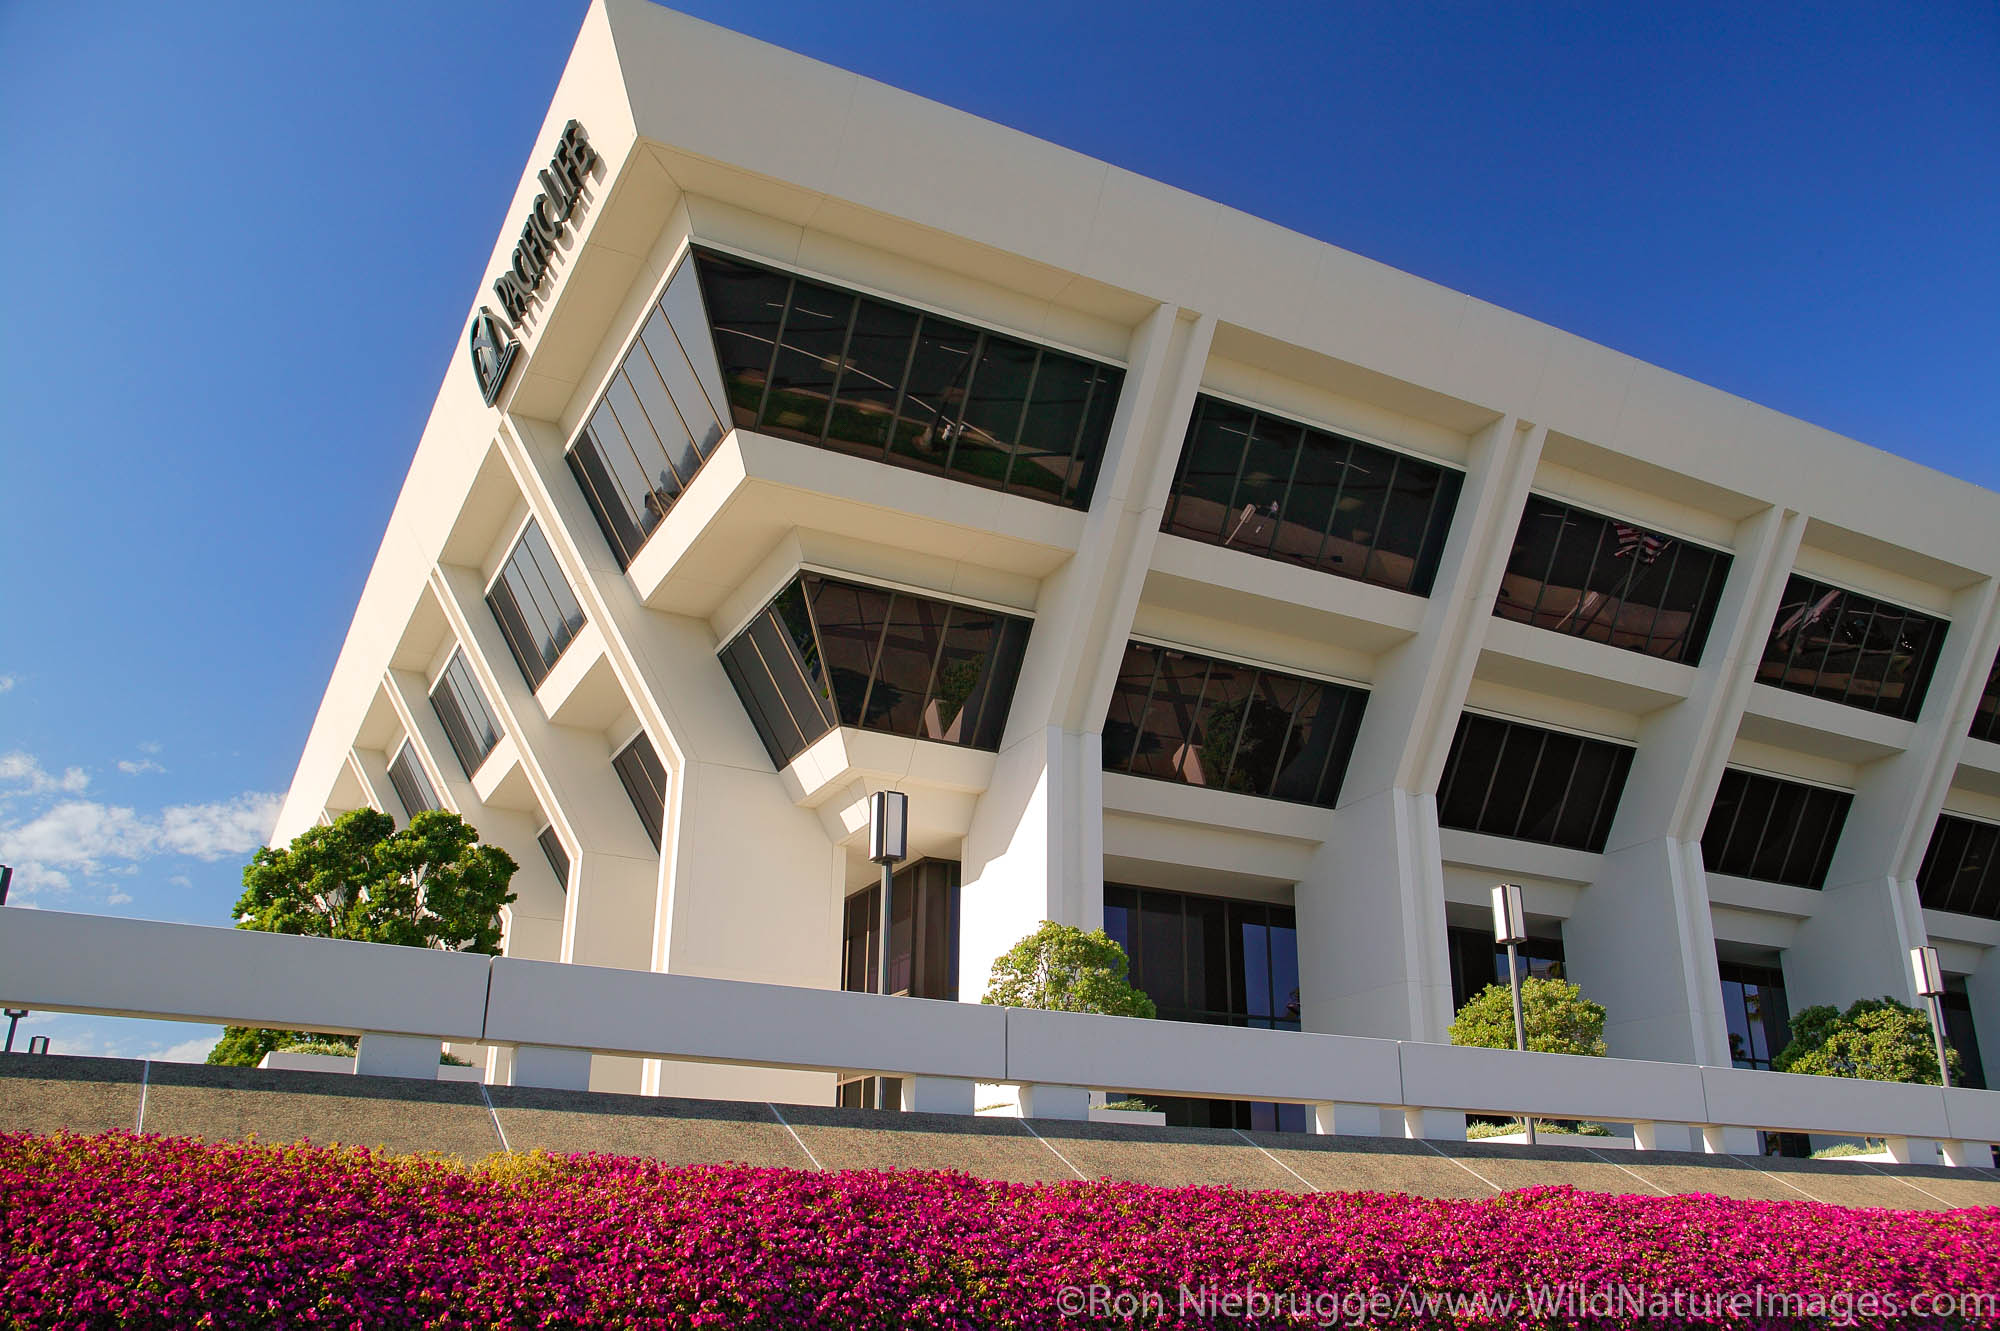 Pacific Life building in Fashion Island, Newport Beach, California.